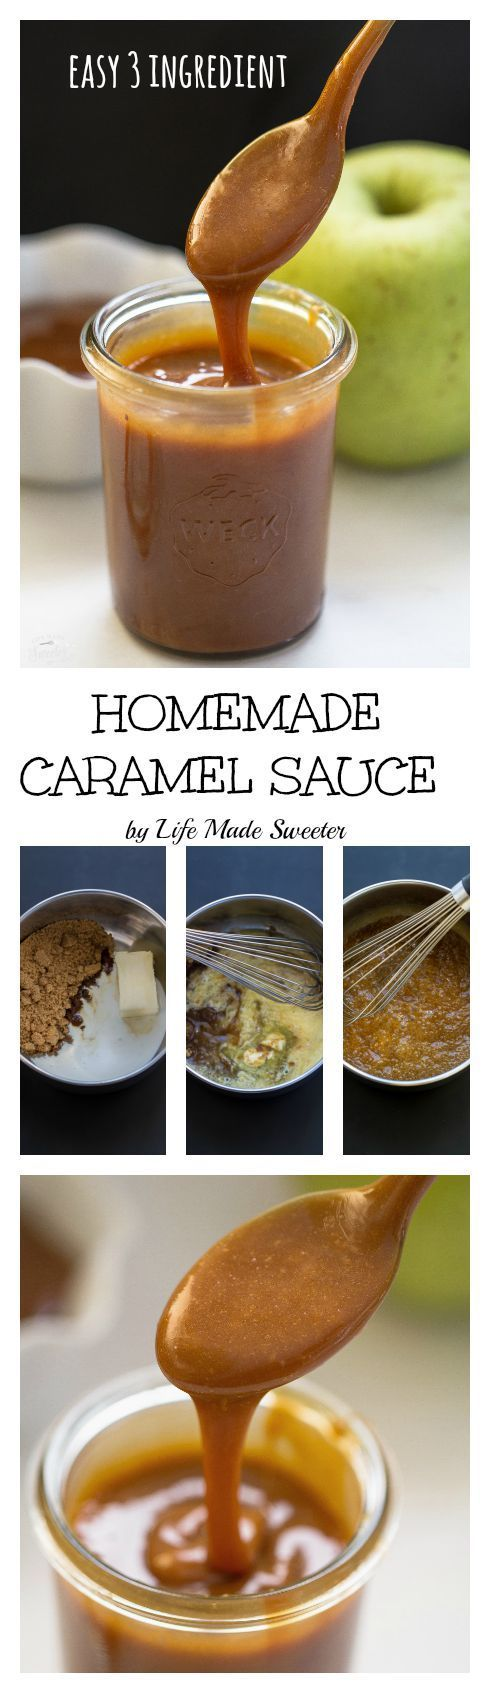 Homemade Caramel Sauce is so easy to make with only 3 ingredients!! No candy thermometer needed!